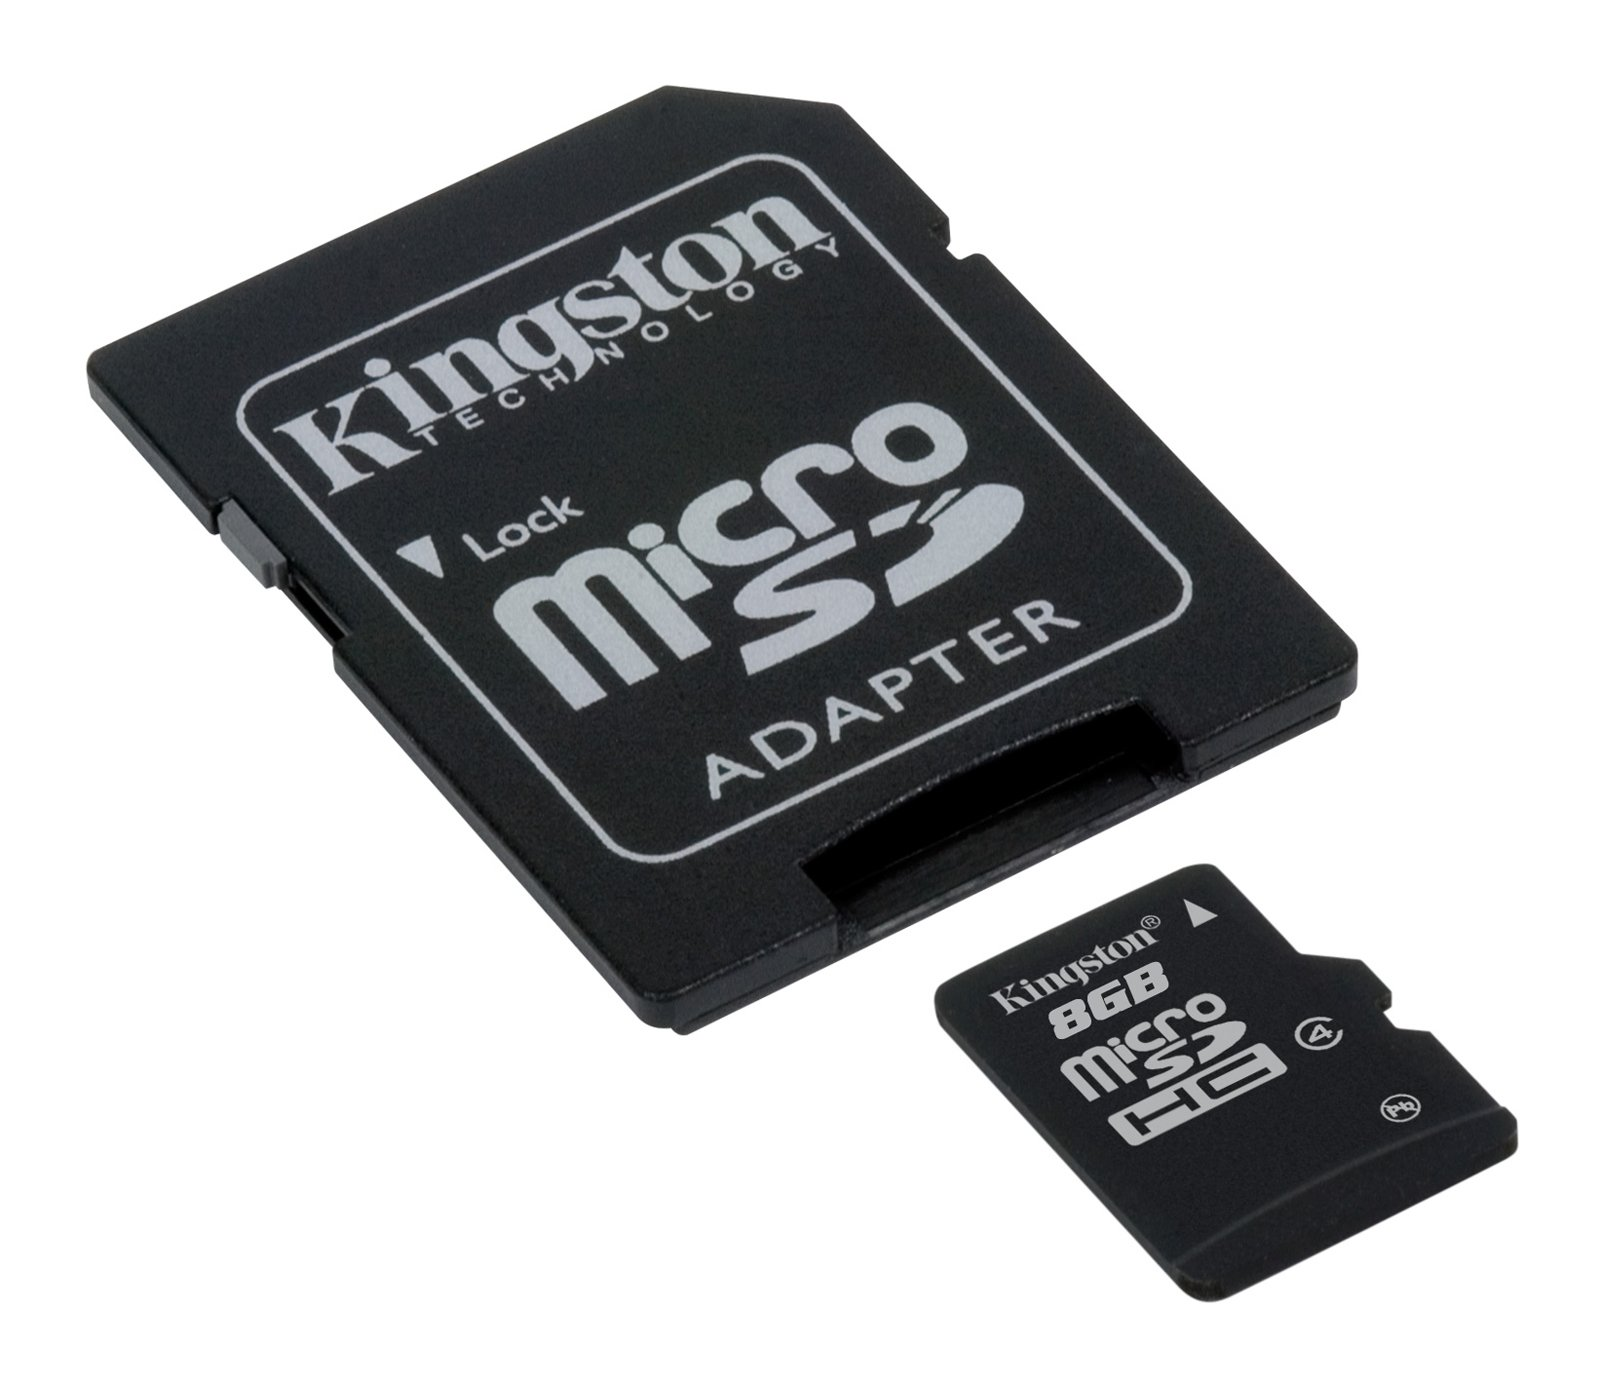 Kingston SDC4/8GB, Tarjeta micro SDHC de 8 GB, Negro ...